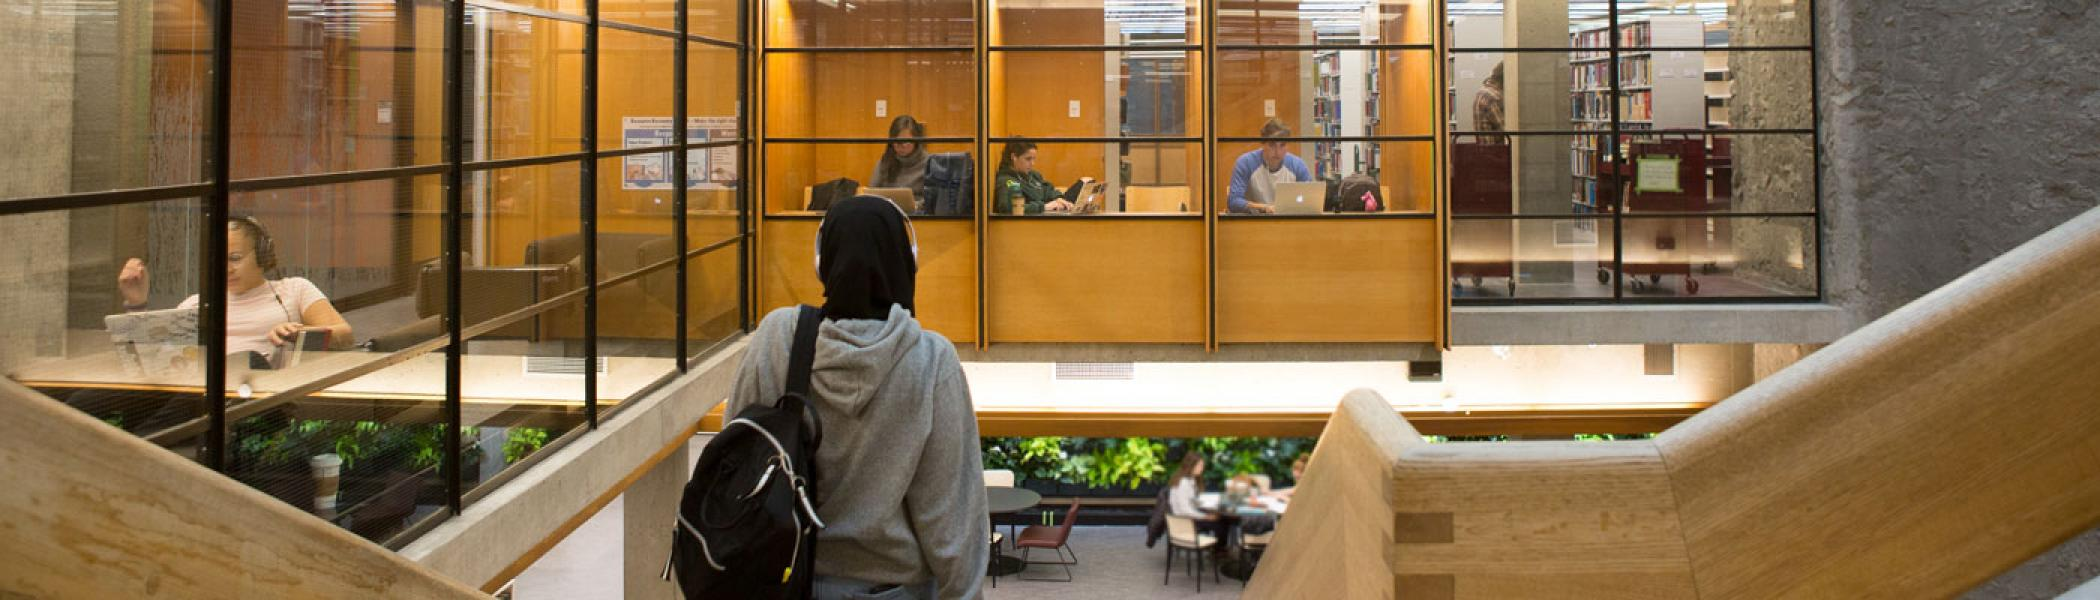 Student walking down the stairs in Bata Library